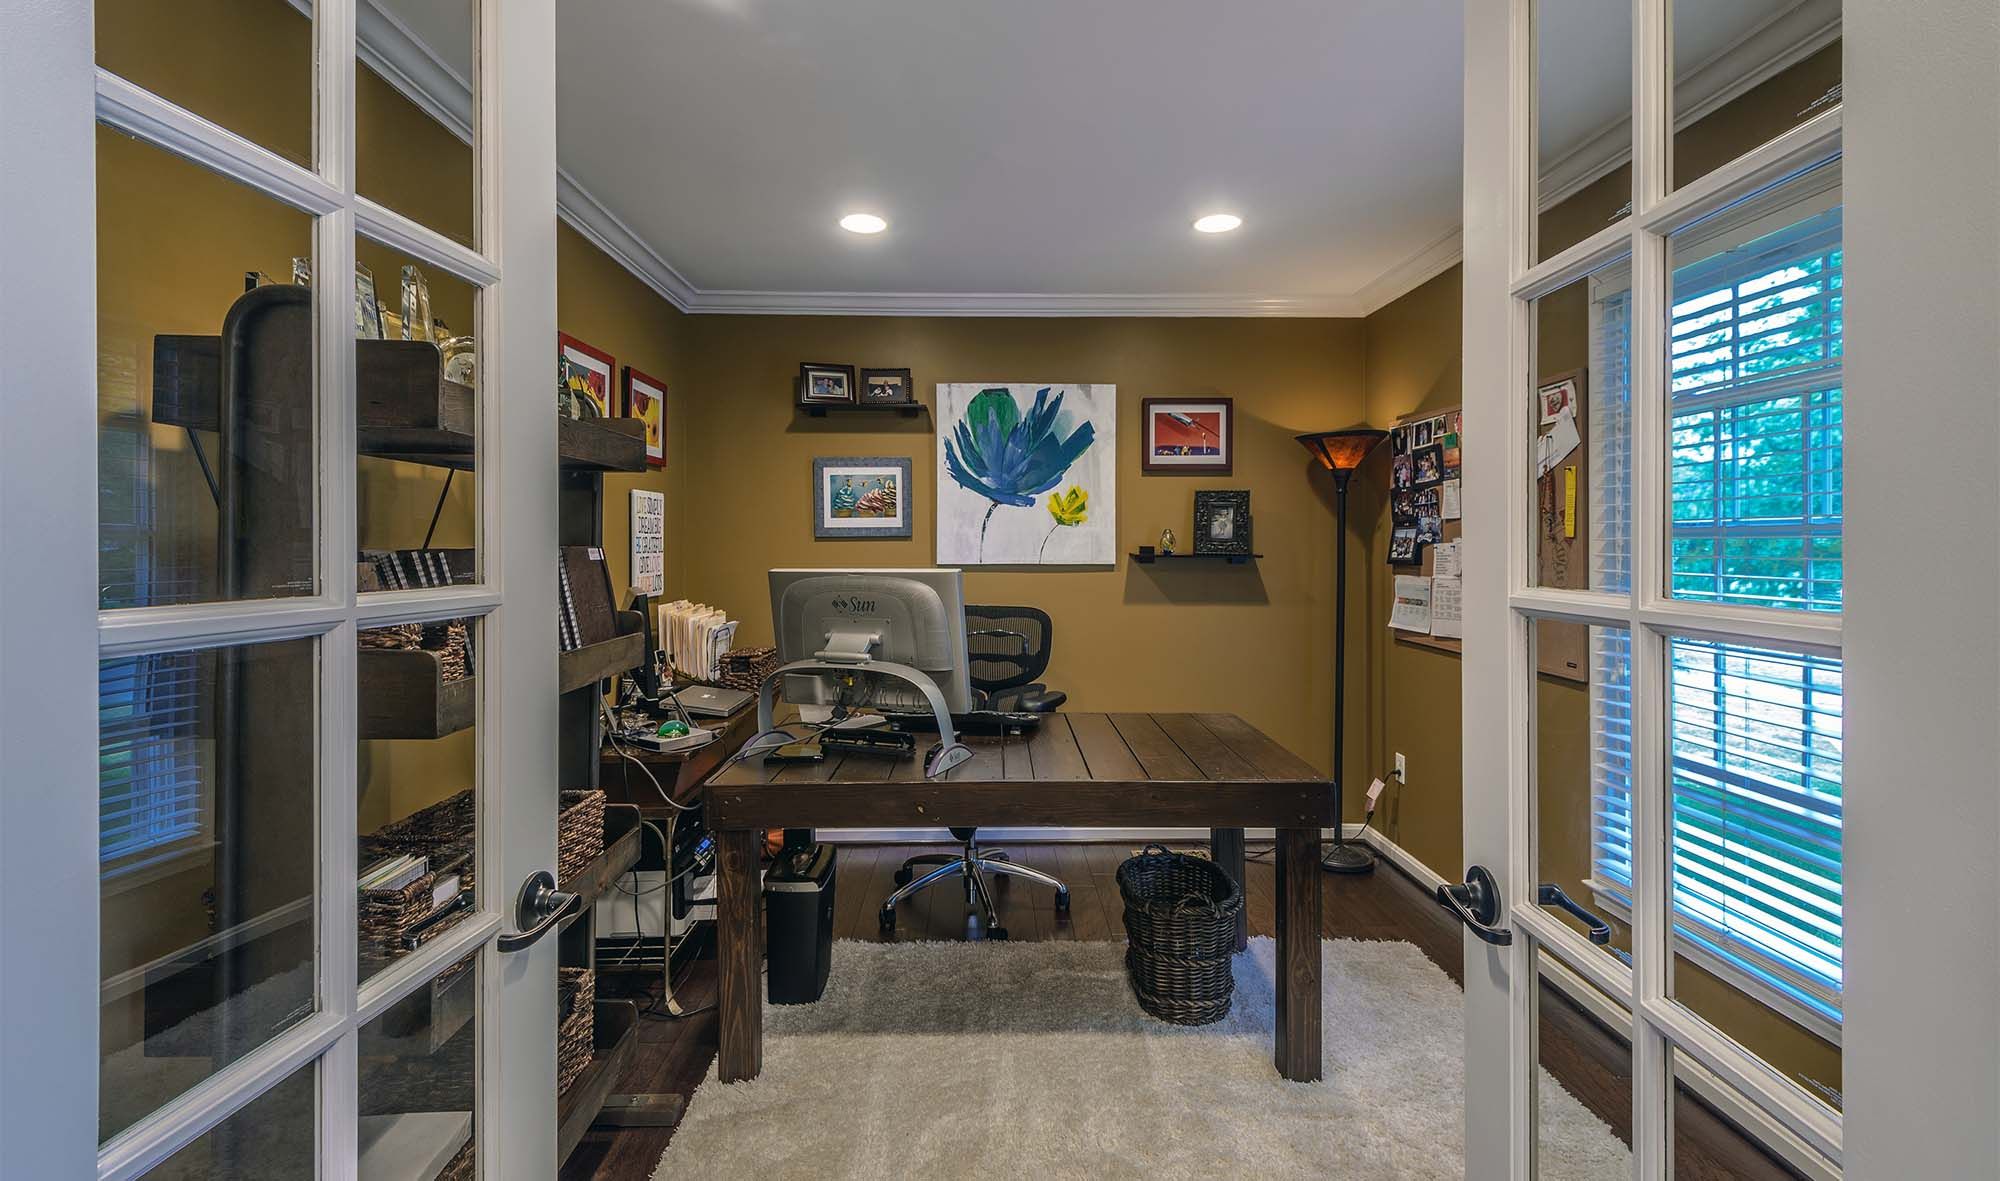 flex room doors white french glass doors with grills brushed nickel hardware home office